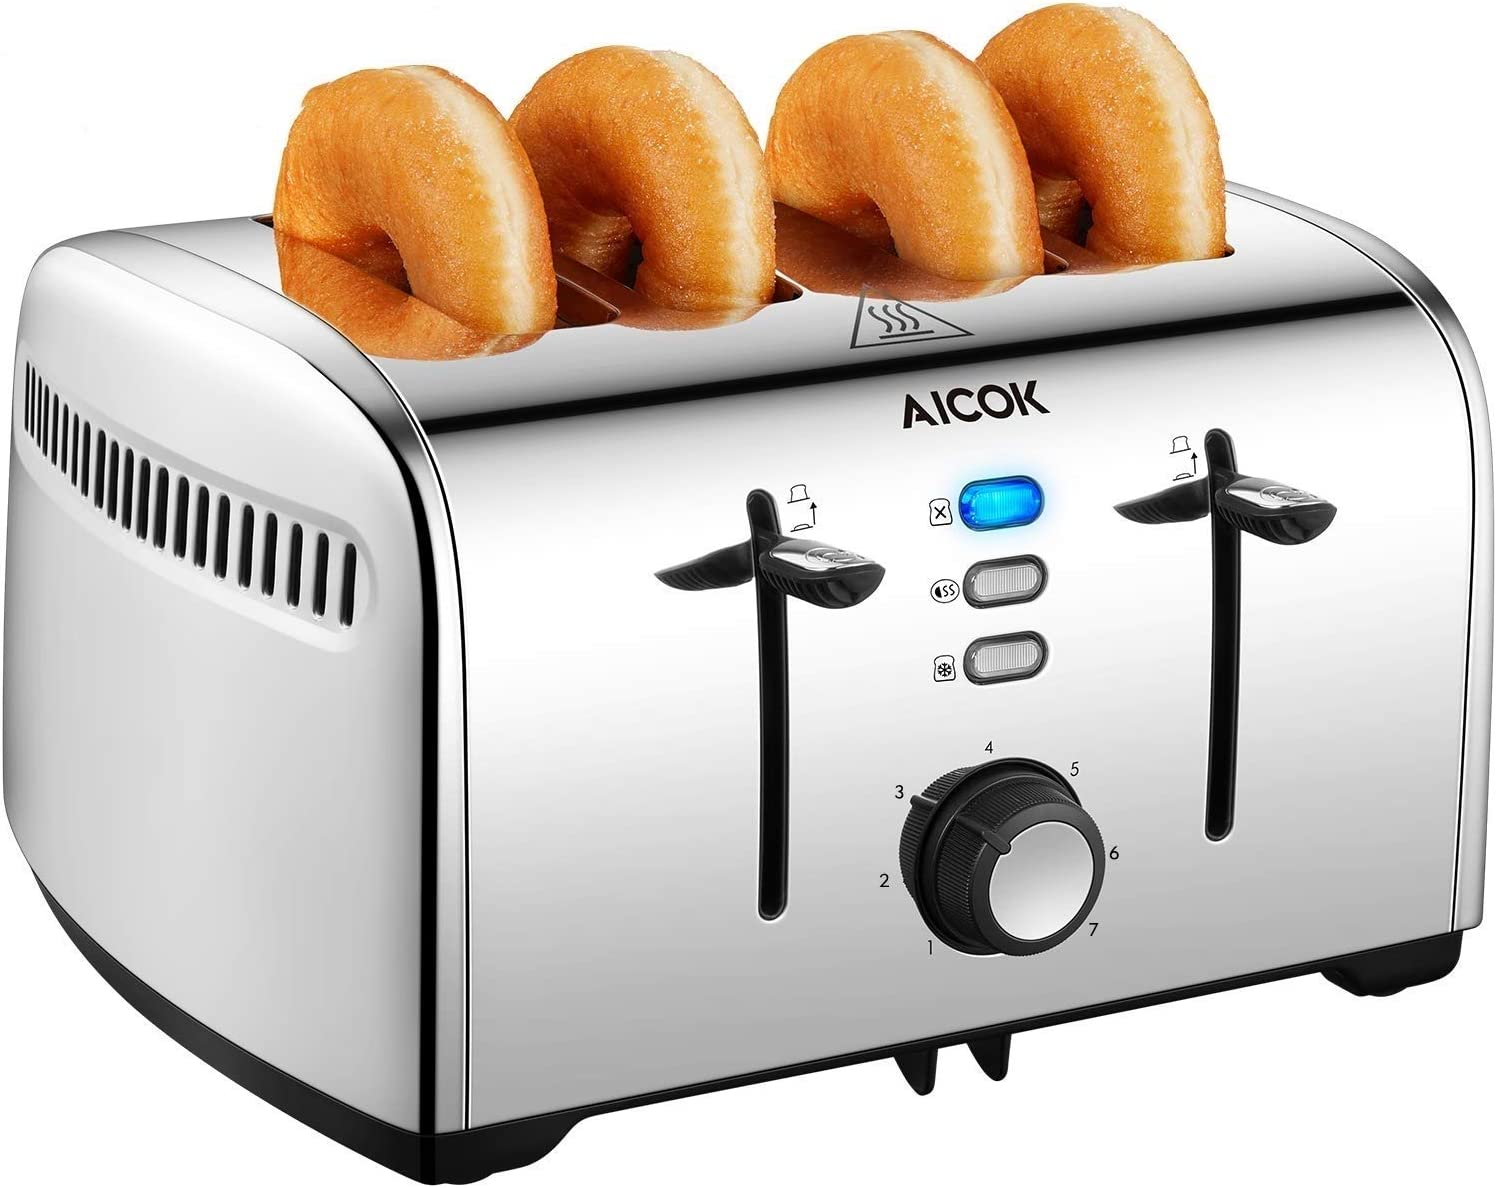 AICOK 4-Slice Toaster, 1.6inch Extra-Wide Slot Dual Independent Control Toaster with Bagel, Defrost, Cancel Function, 7-Shade Setting&2-Minutes Quick Heating, 18/10 Stainless Steel